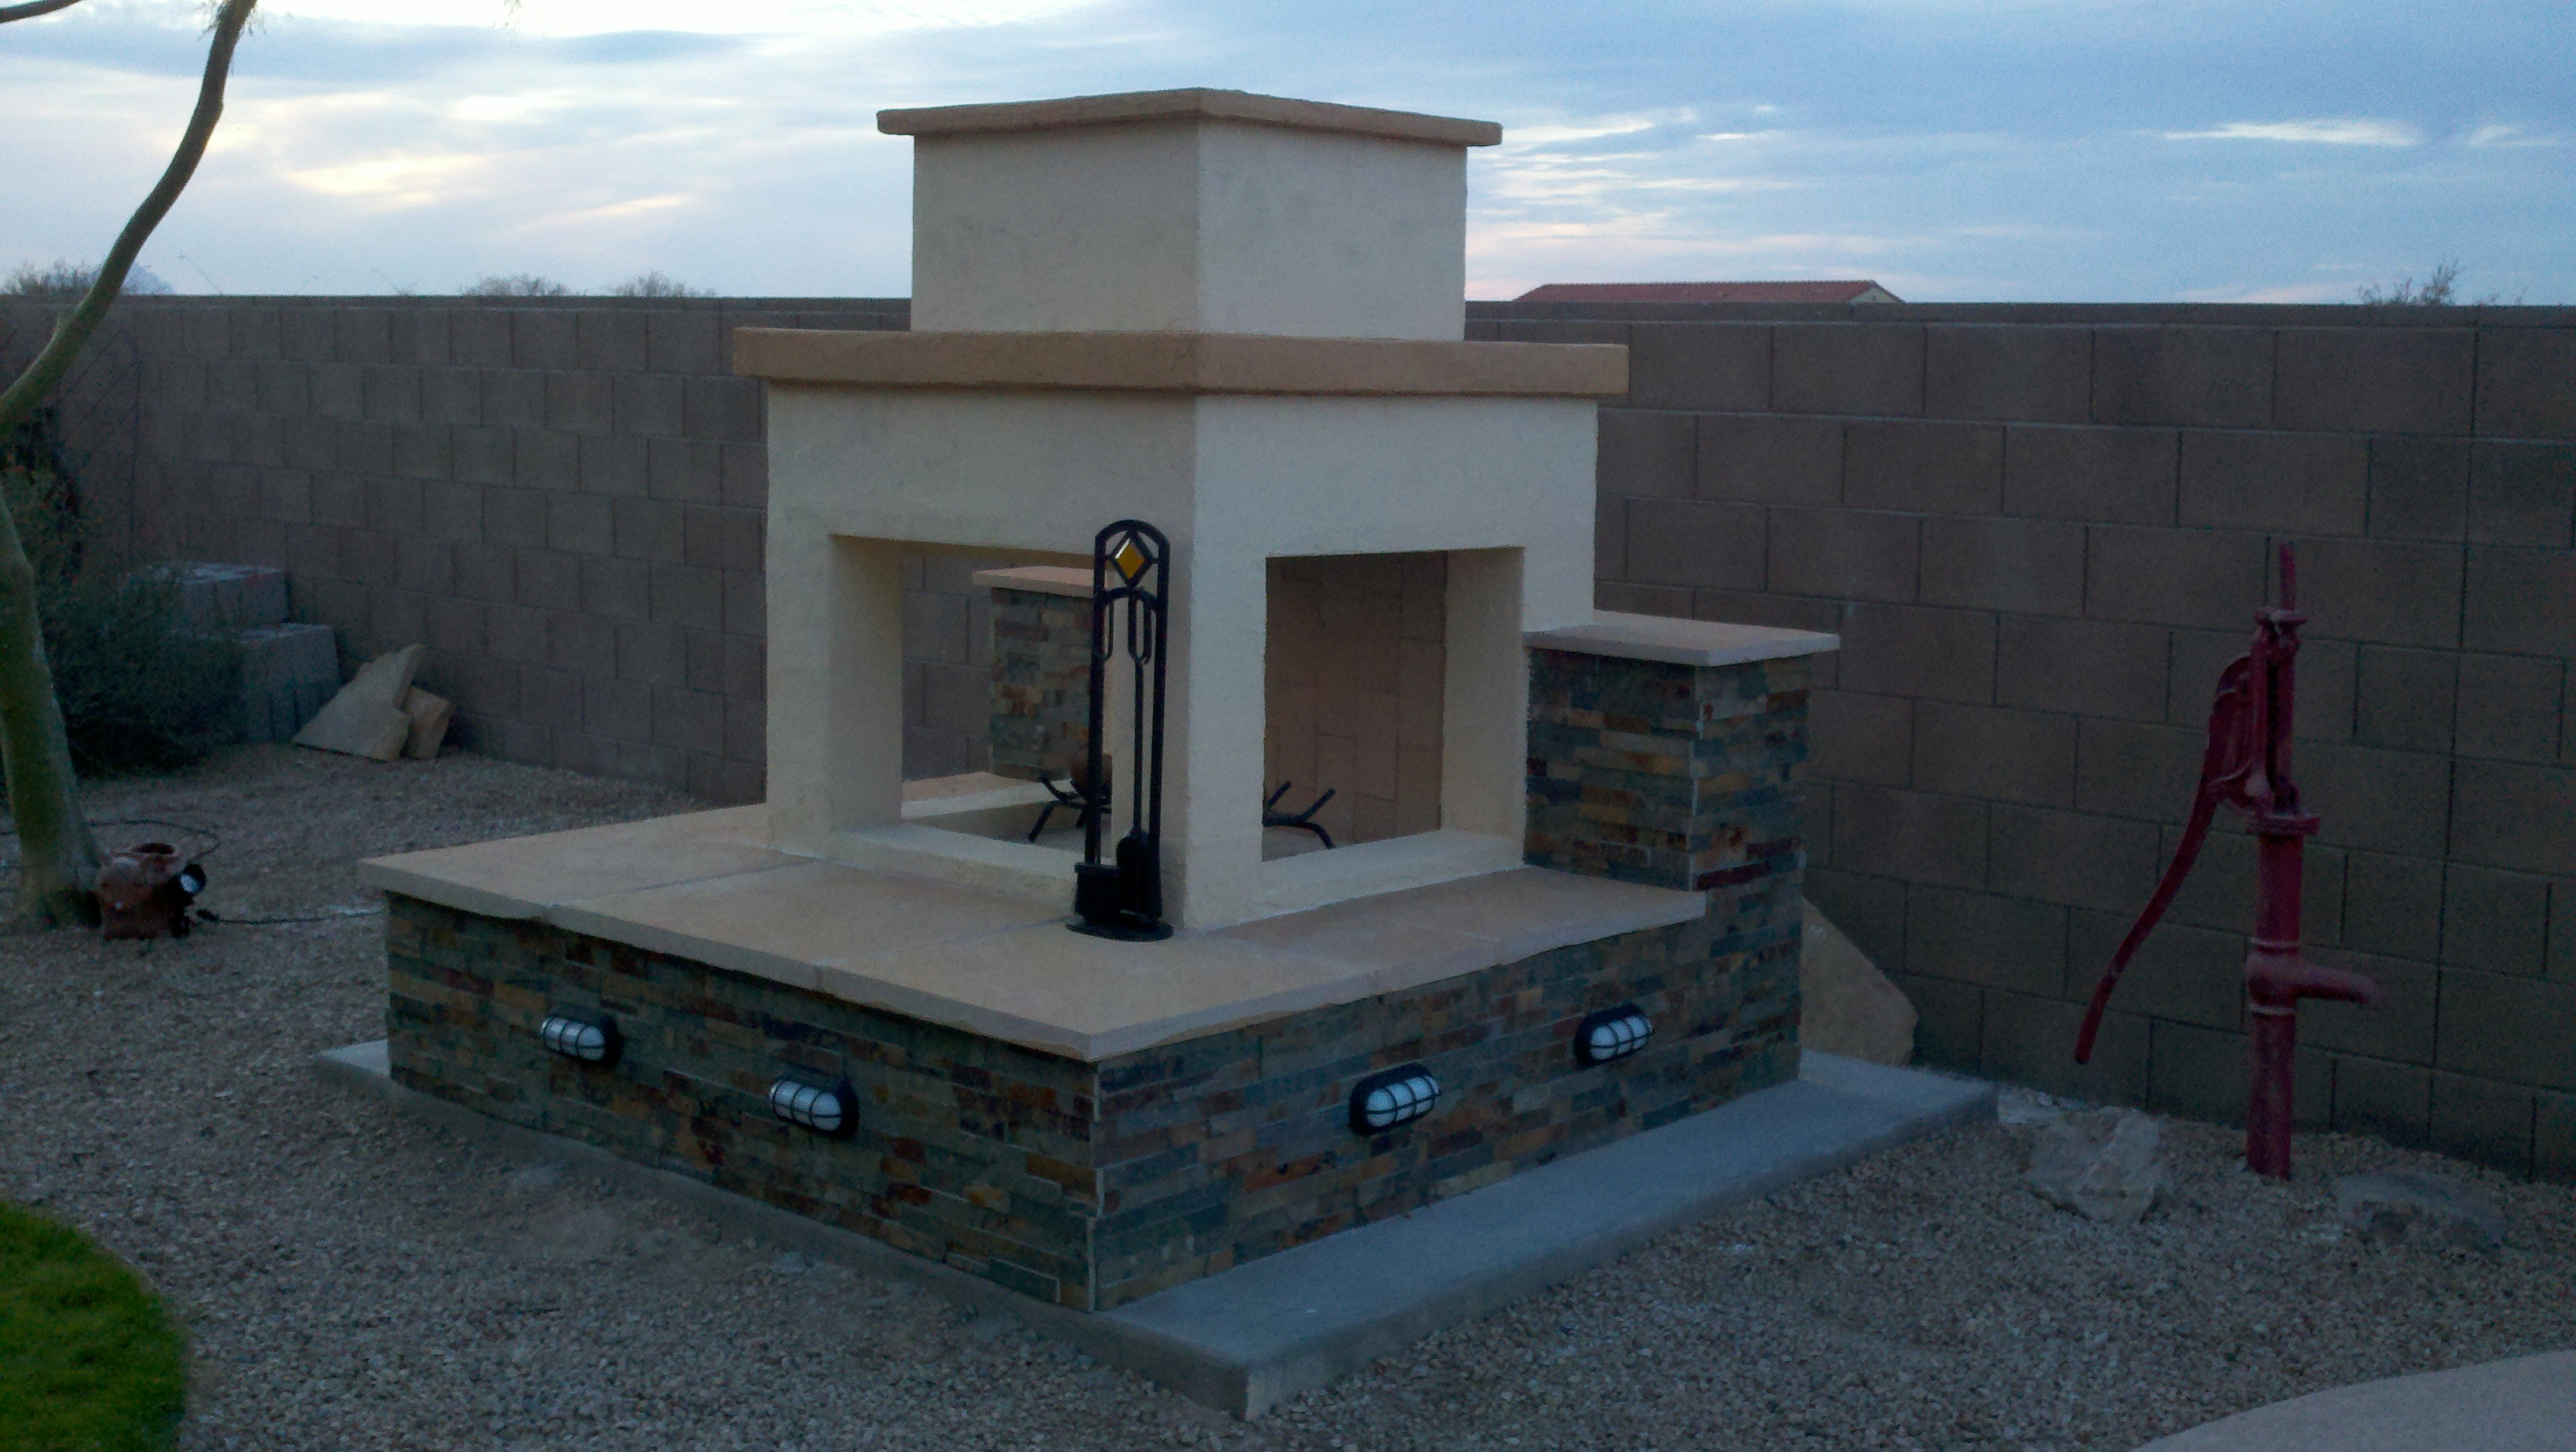 3 Great Ways to Finish Your Outdoor Fireplace | Your DIY ... on Building Outdoor Fireplace With Cinder Block id=47791